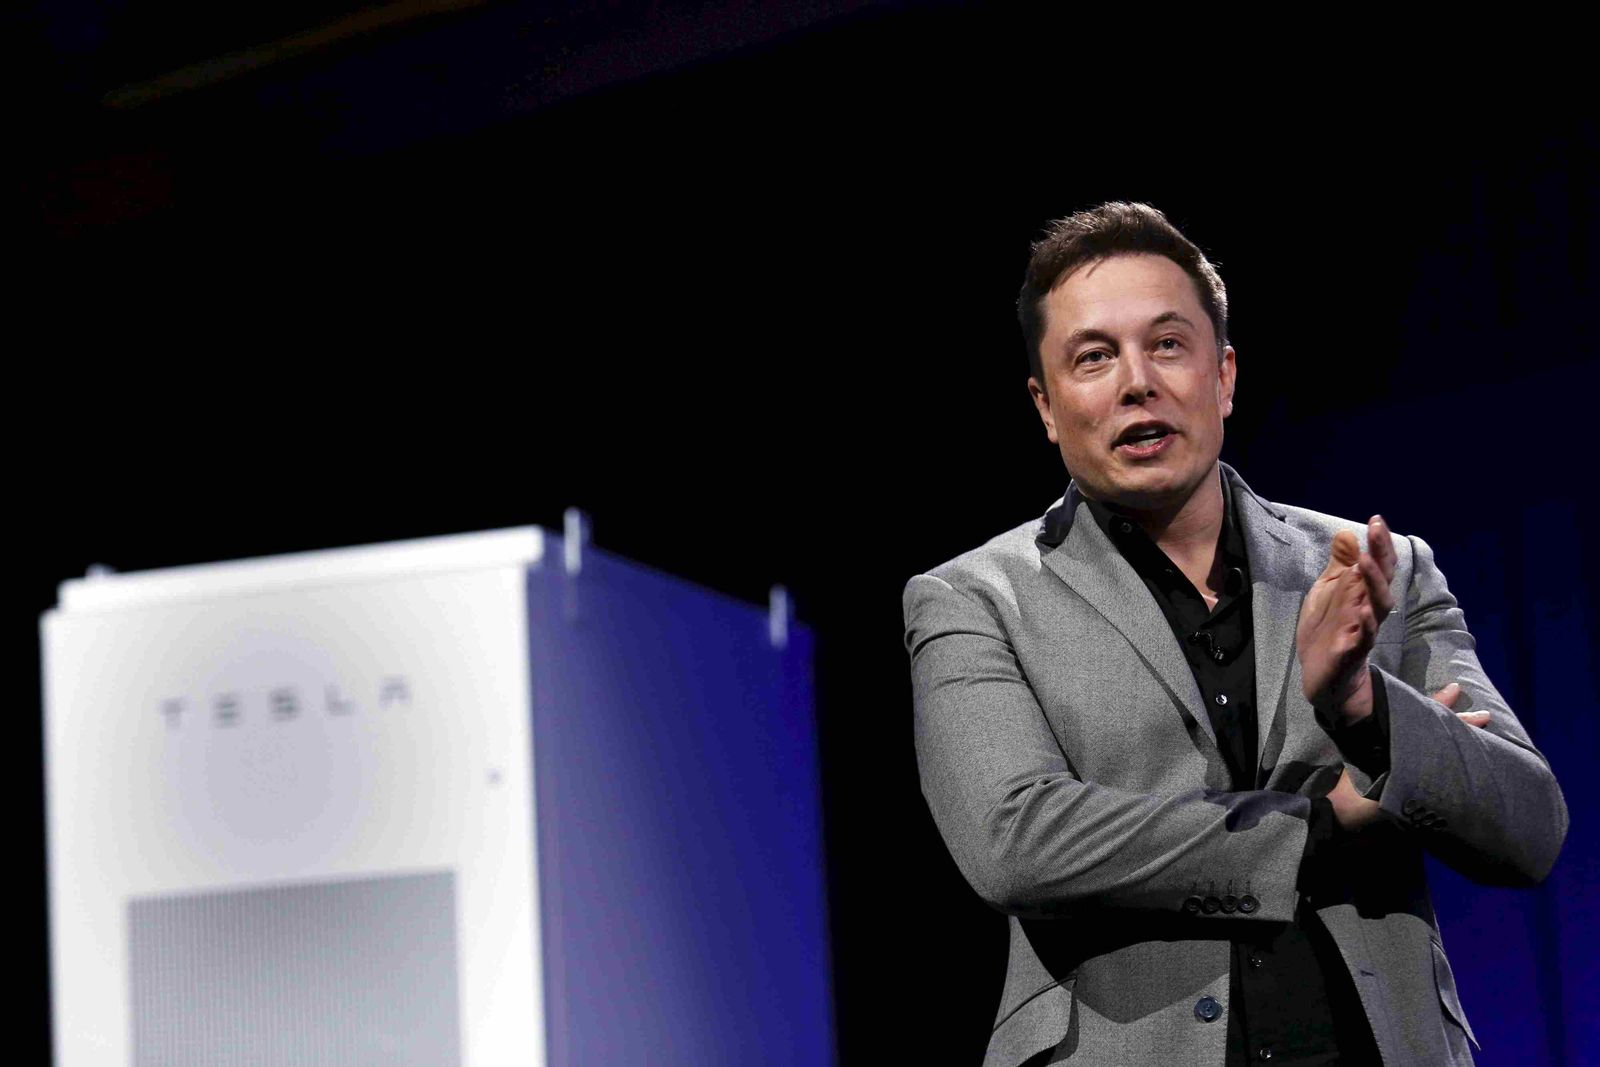 File photo Tesla Motors CEO Elon Musk reveals the Powerwall Home Battery during an event in Hawthorne, California